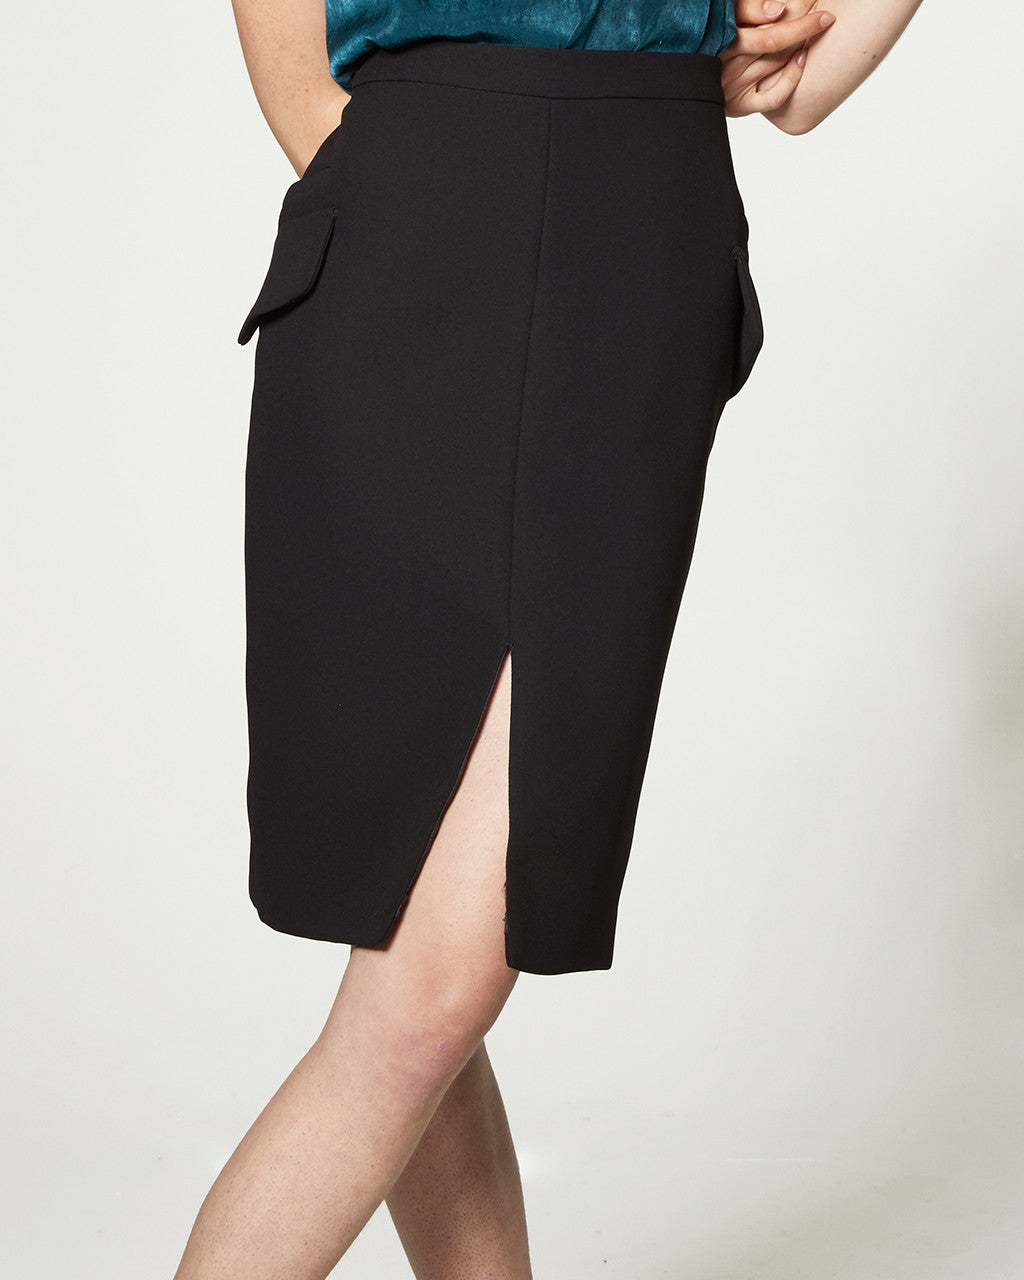 POCKET PENCIL SKIRT - BLACK